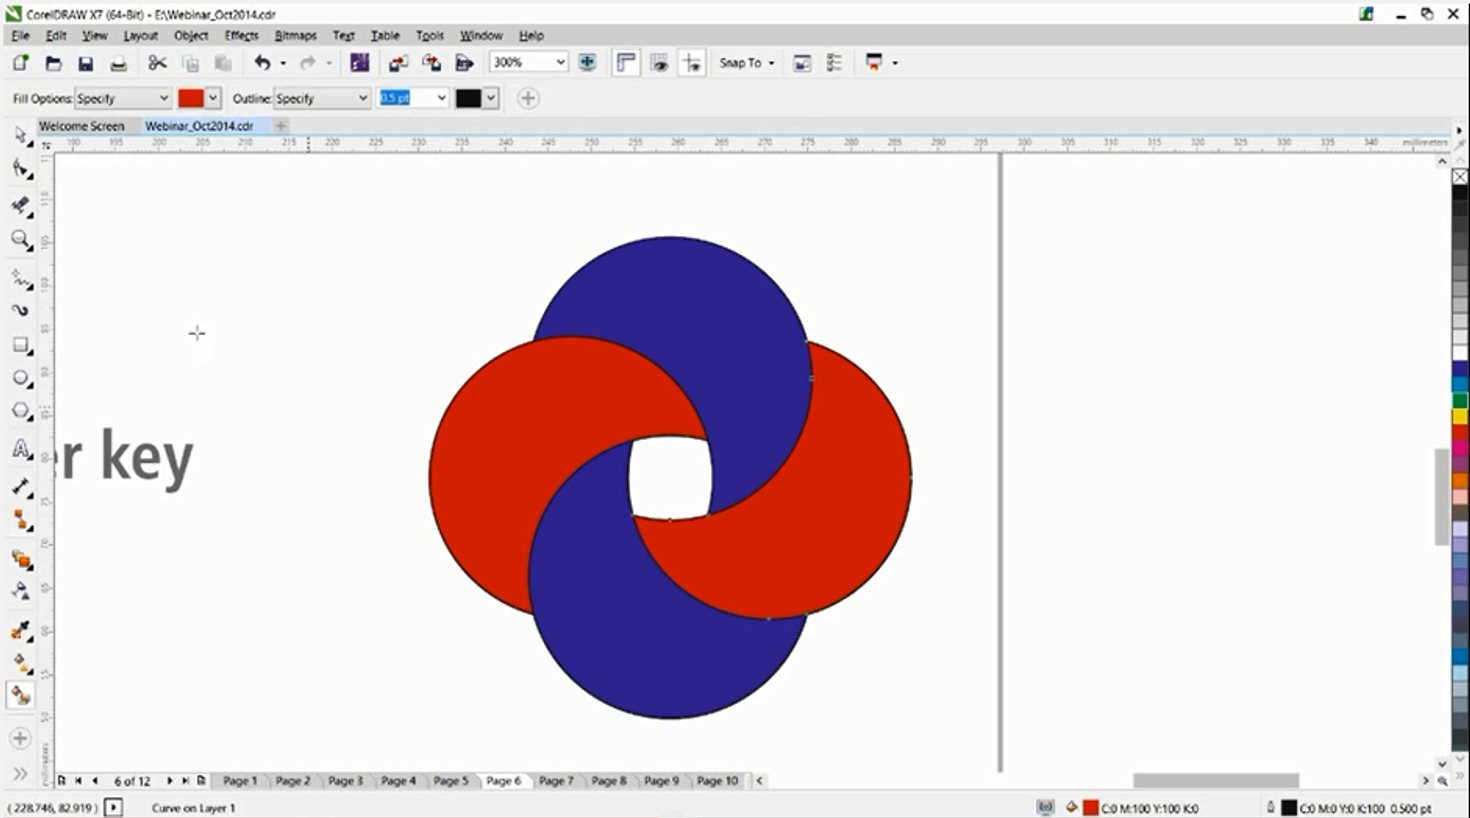 New Webinar Working With Curves A Simple To Follow Webinar For